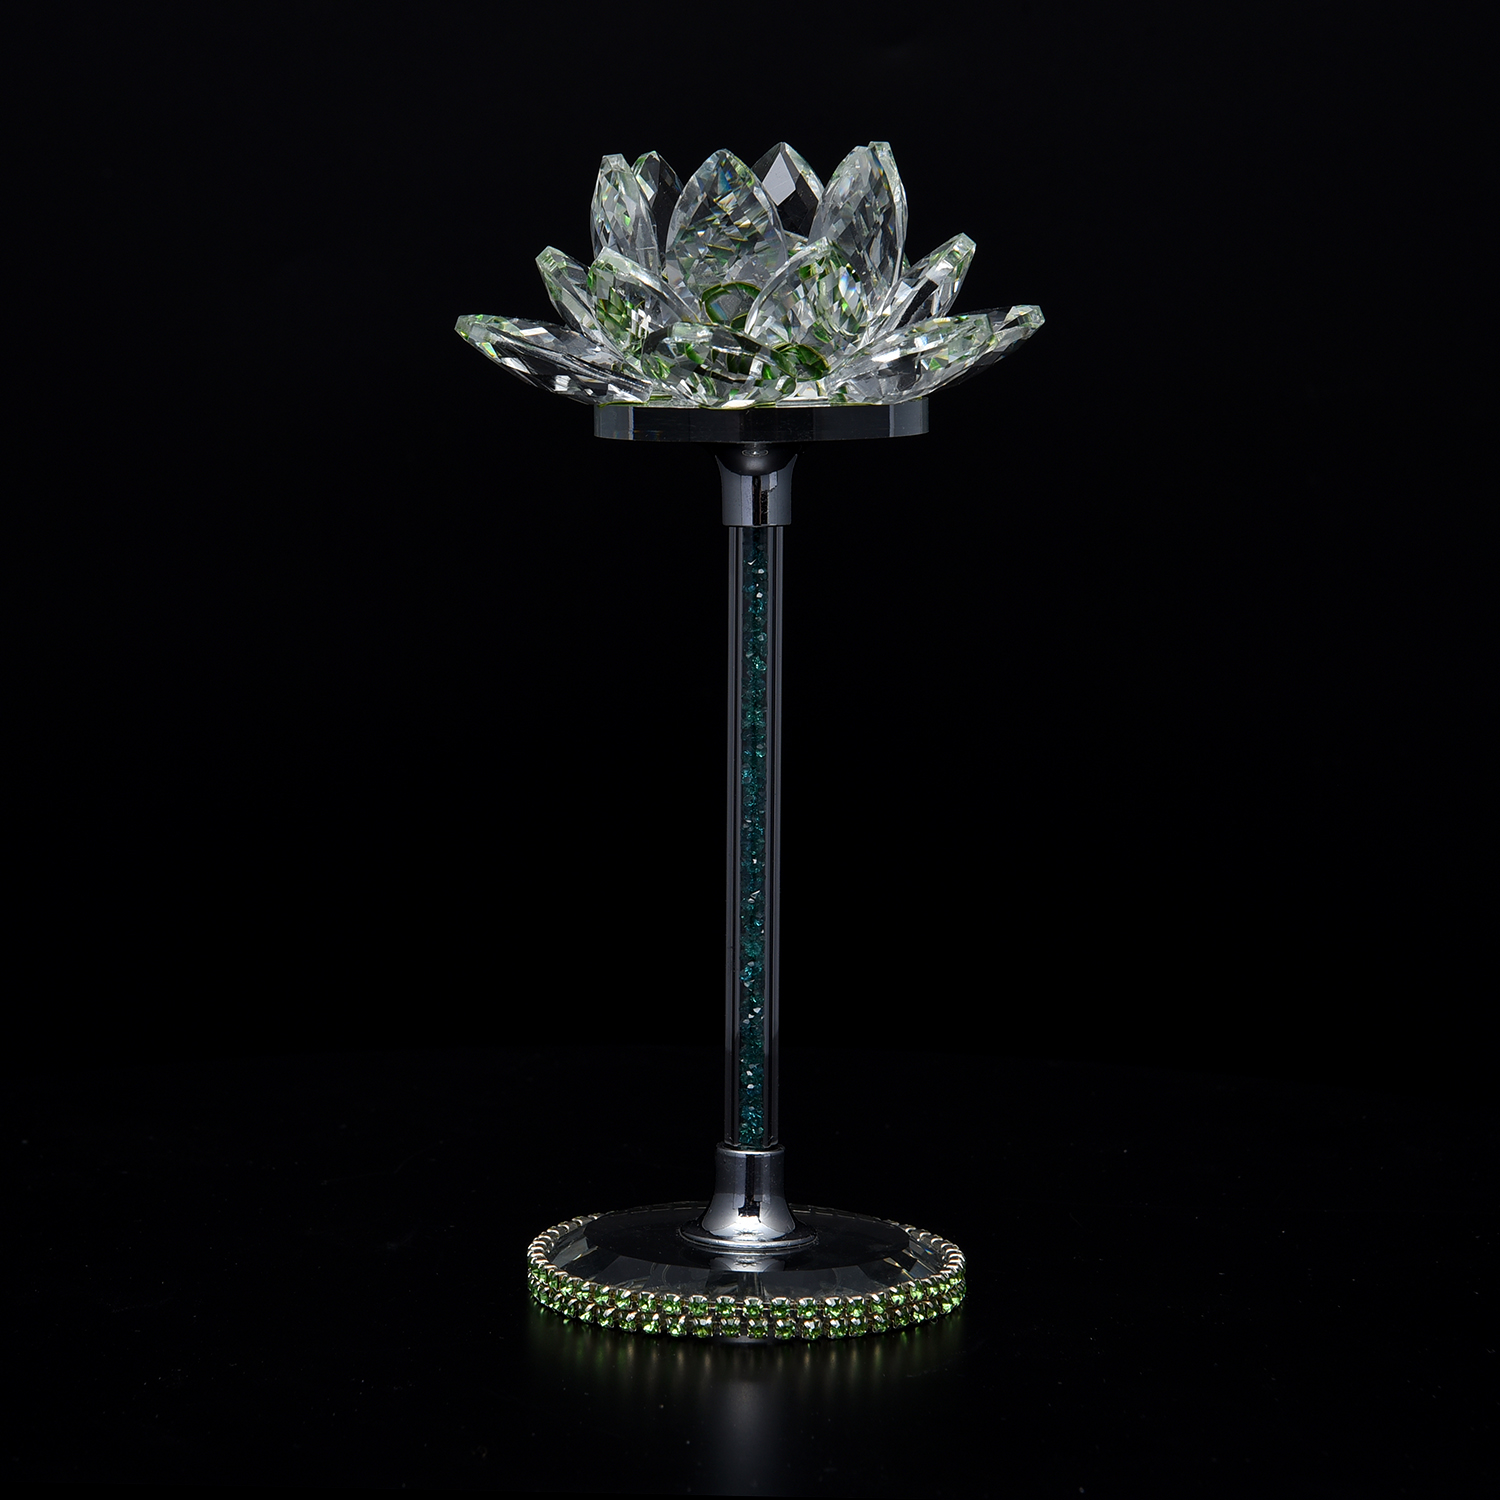 Green glass crystal lotus flower decor crystal decor Crystal home decor